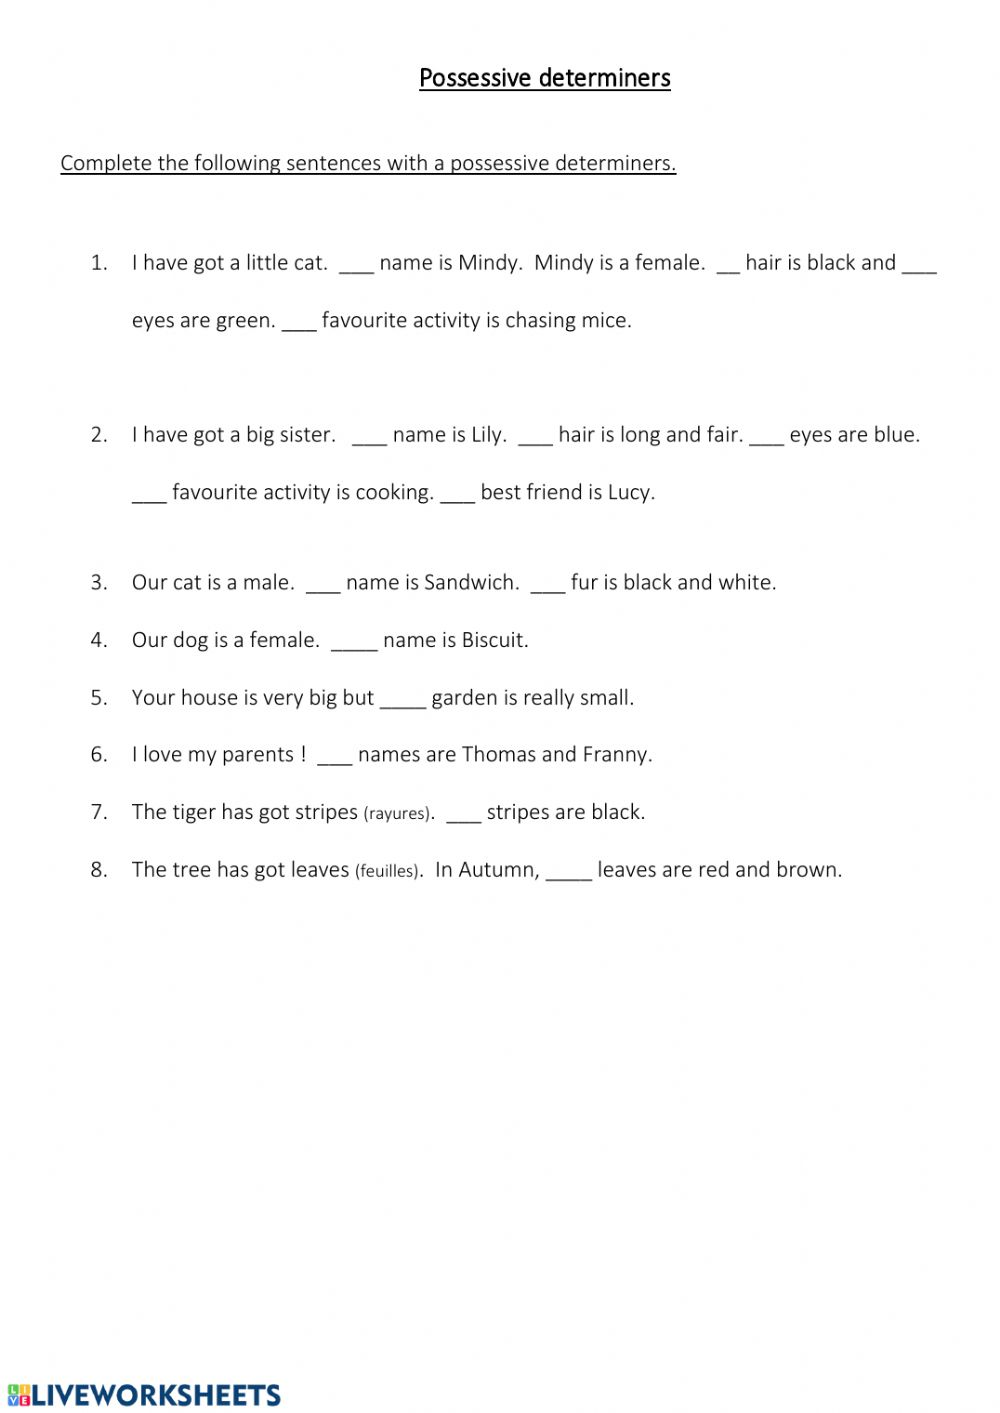 hight resolution of Possessive Determiners activity